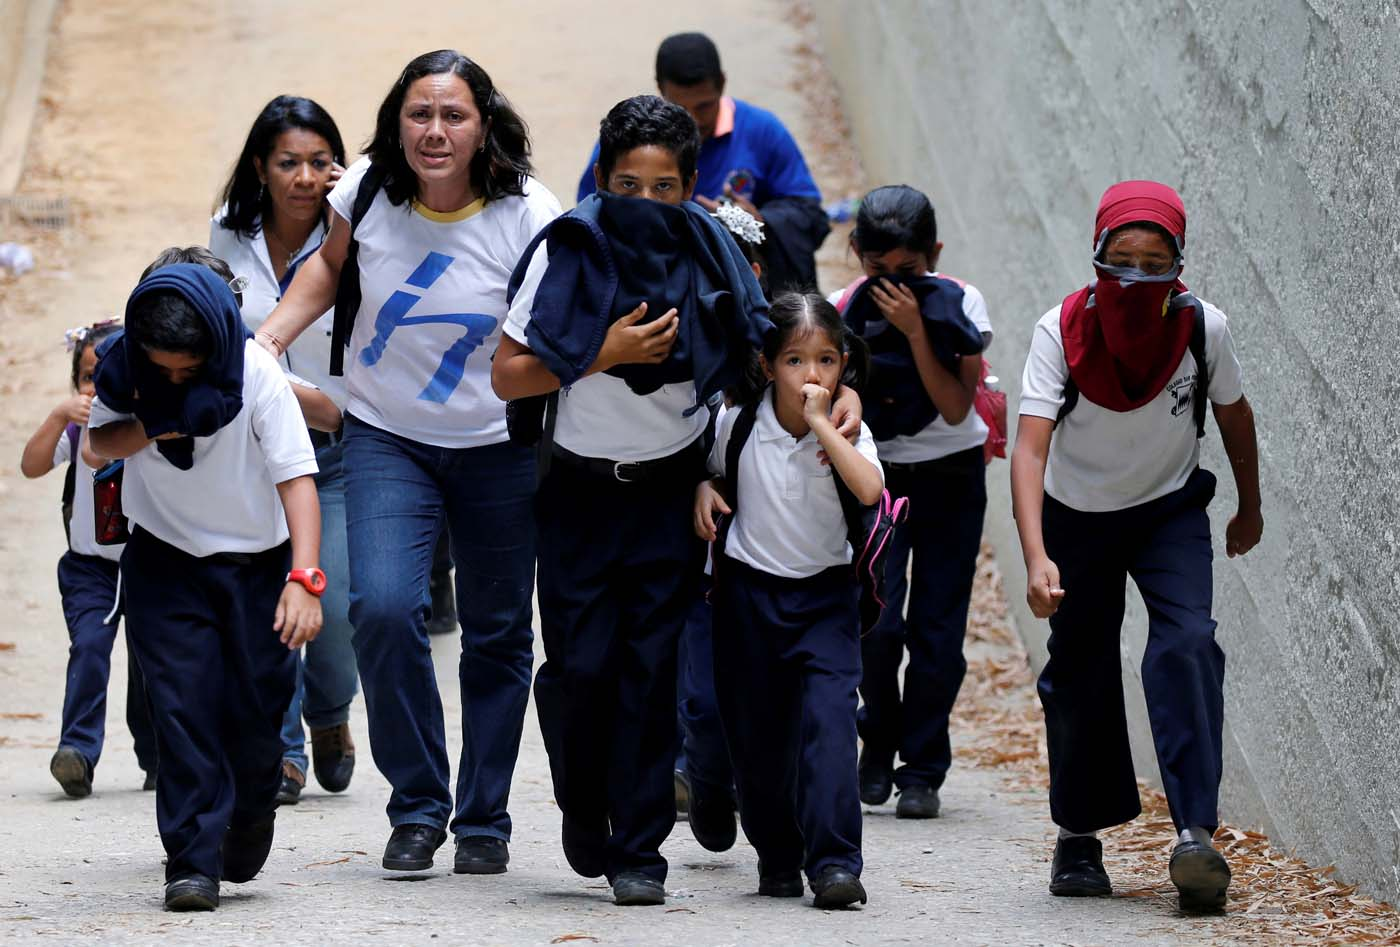 FILE PHOTO: School children protect themselves from tear gas during a rally against Venezuela's President Nicolas Maduro in Caracas, Venezuela April 26, 2017. REUTERS/Carlos Garcia Rawlins/File Photo